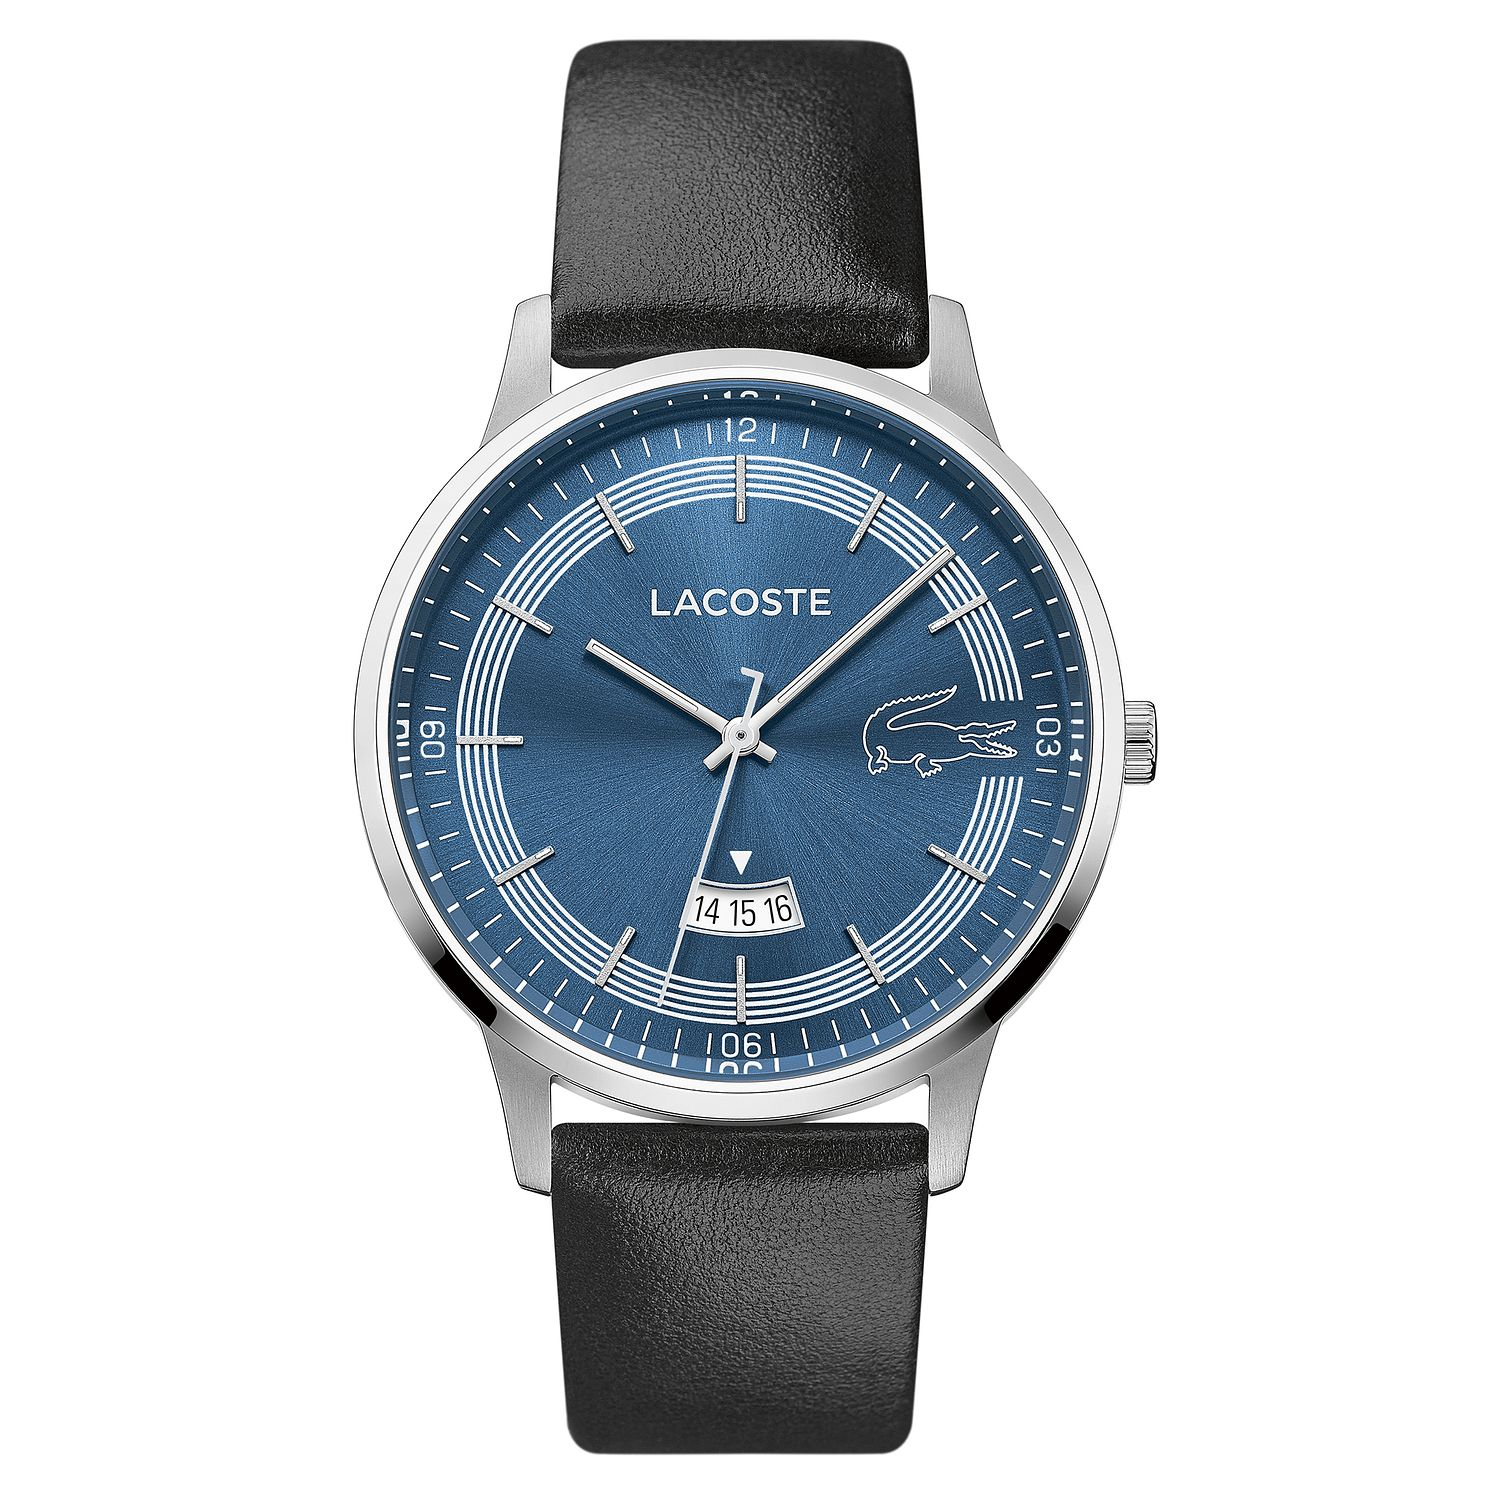 Lacoste Madrid Men's Black Leather Strap Watch - Product number 5058414